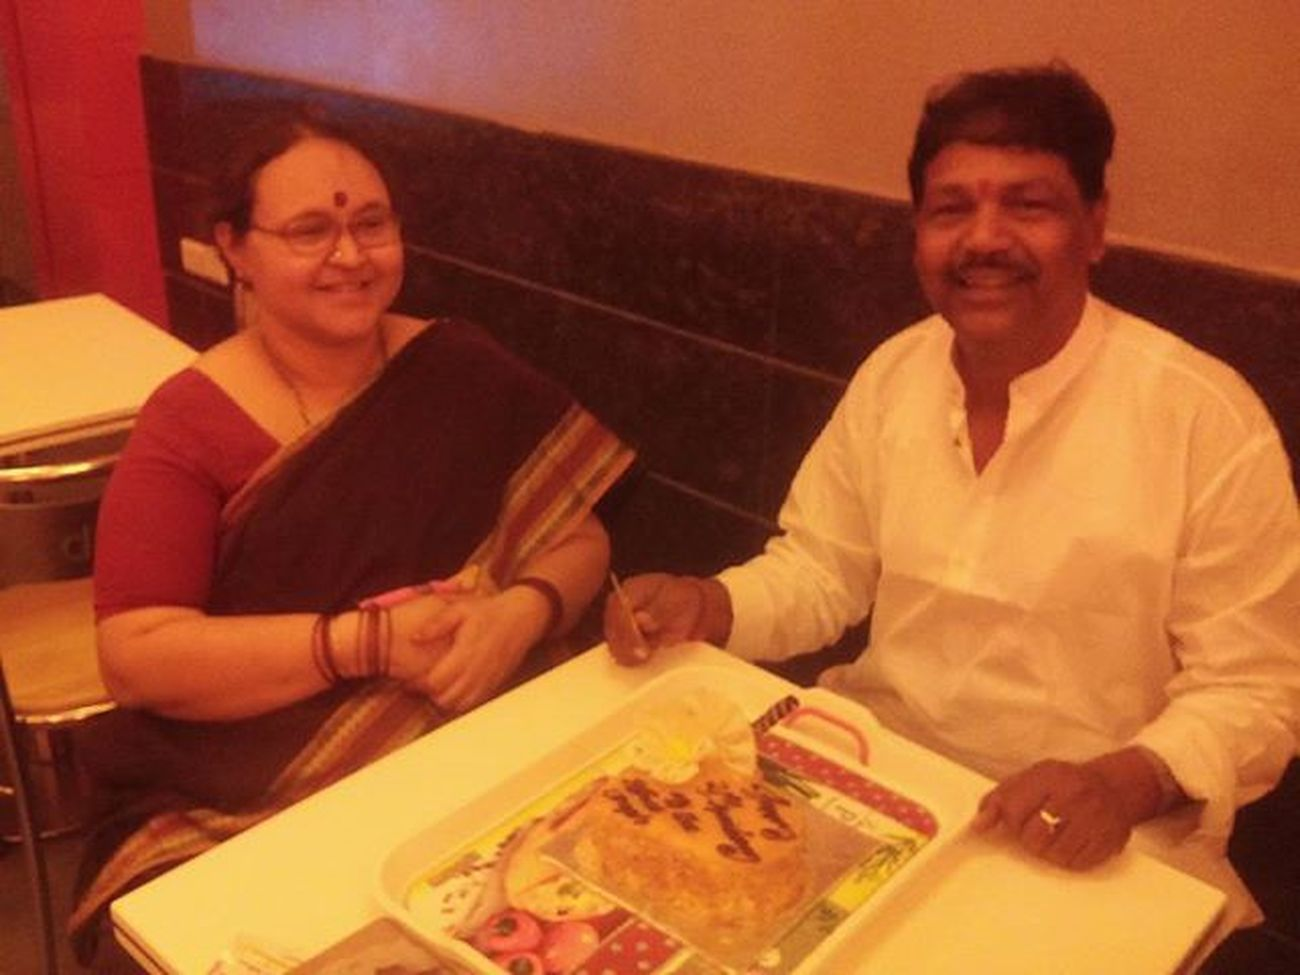 THE BEST COUPLE IN THE WORLD ... HAPPY WEDDING ANNIVERSARY ~~~~~~~~~~~~~~~~~~~ 💖👉MOM & DAD..... 👏👏👏👏👏👏👏👏👏👏 Mother Father Mom Dad Weddinganniversary Wedding Love Best  couple Surprise Party Lovelycouple Bestcoupleintheworld Loveyouforever Fotogeek15 Amma Nanna